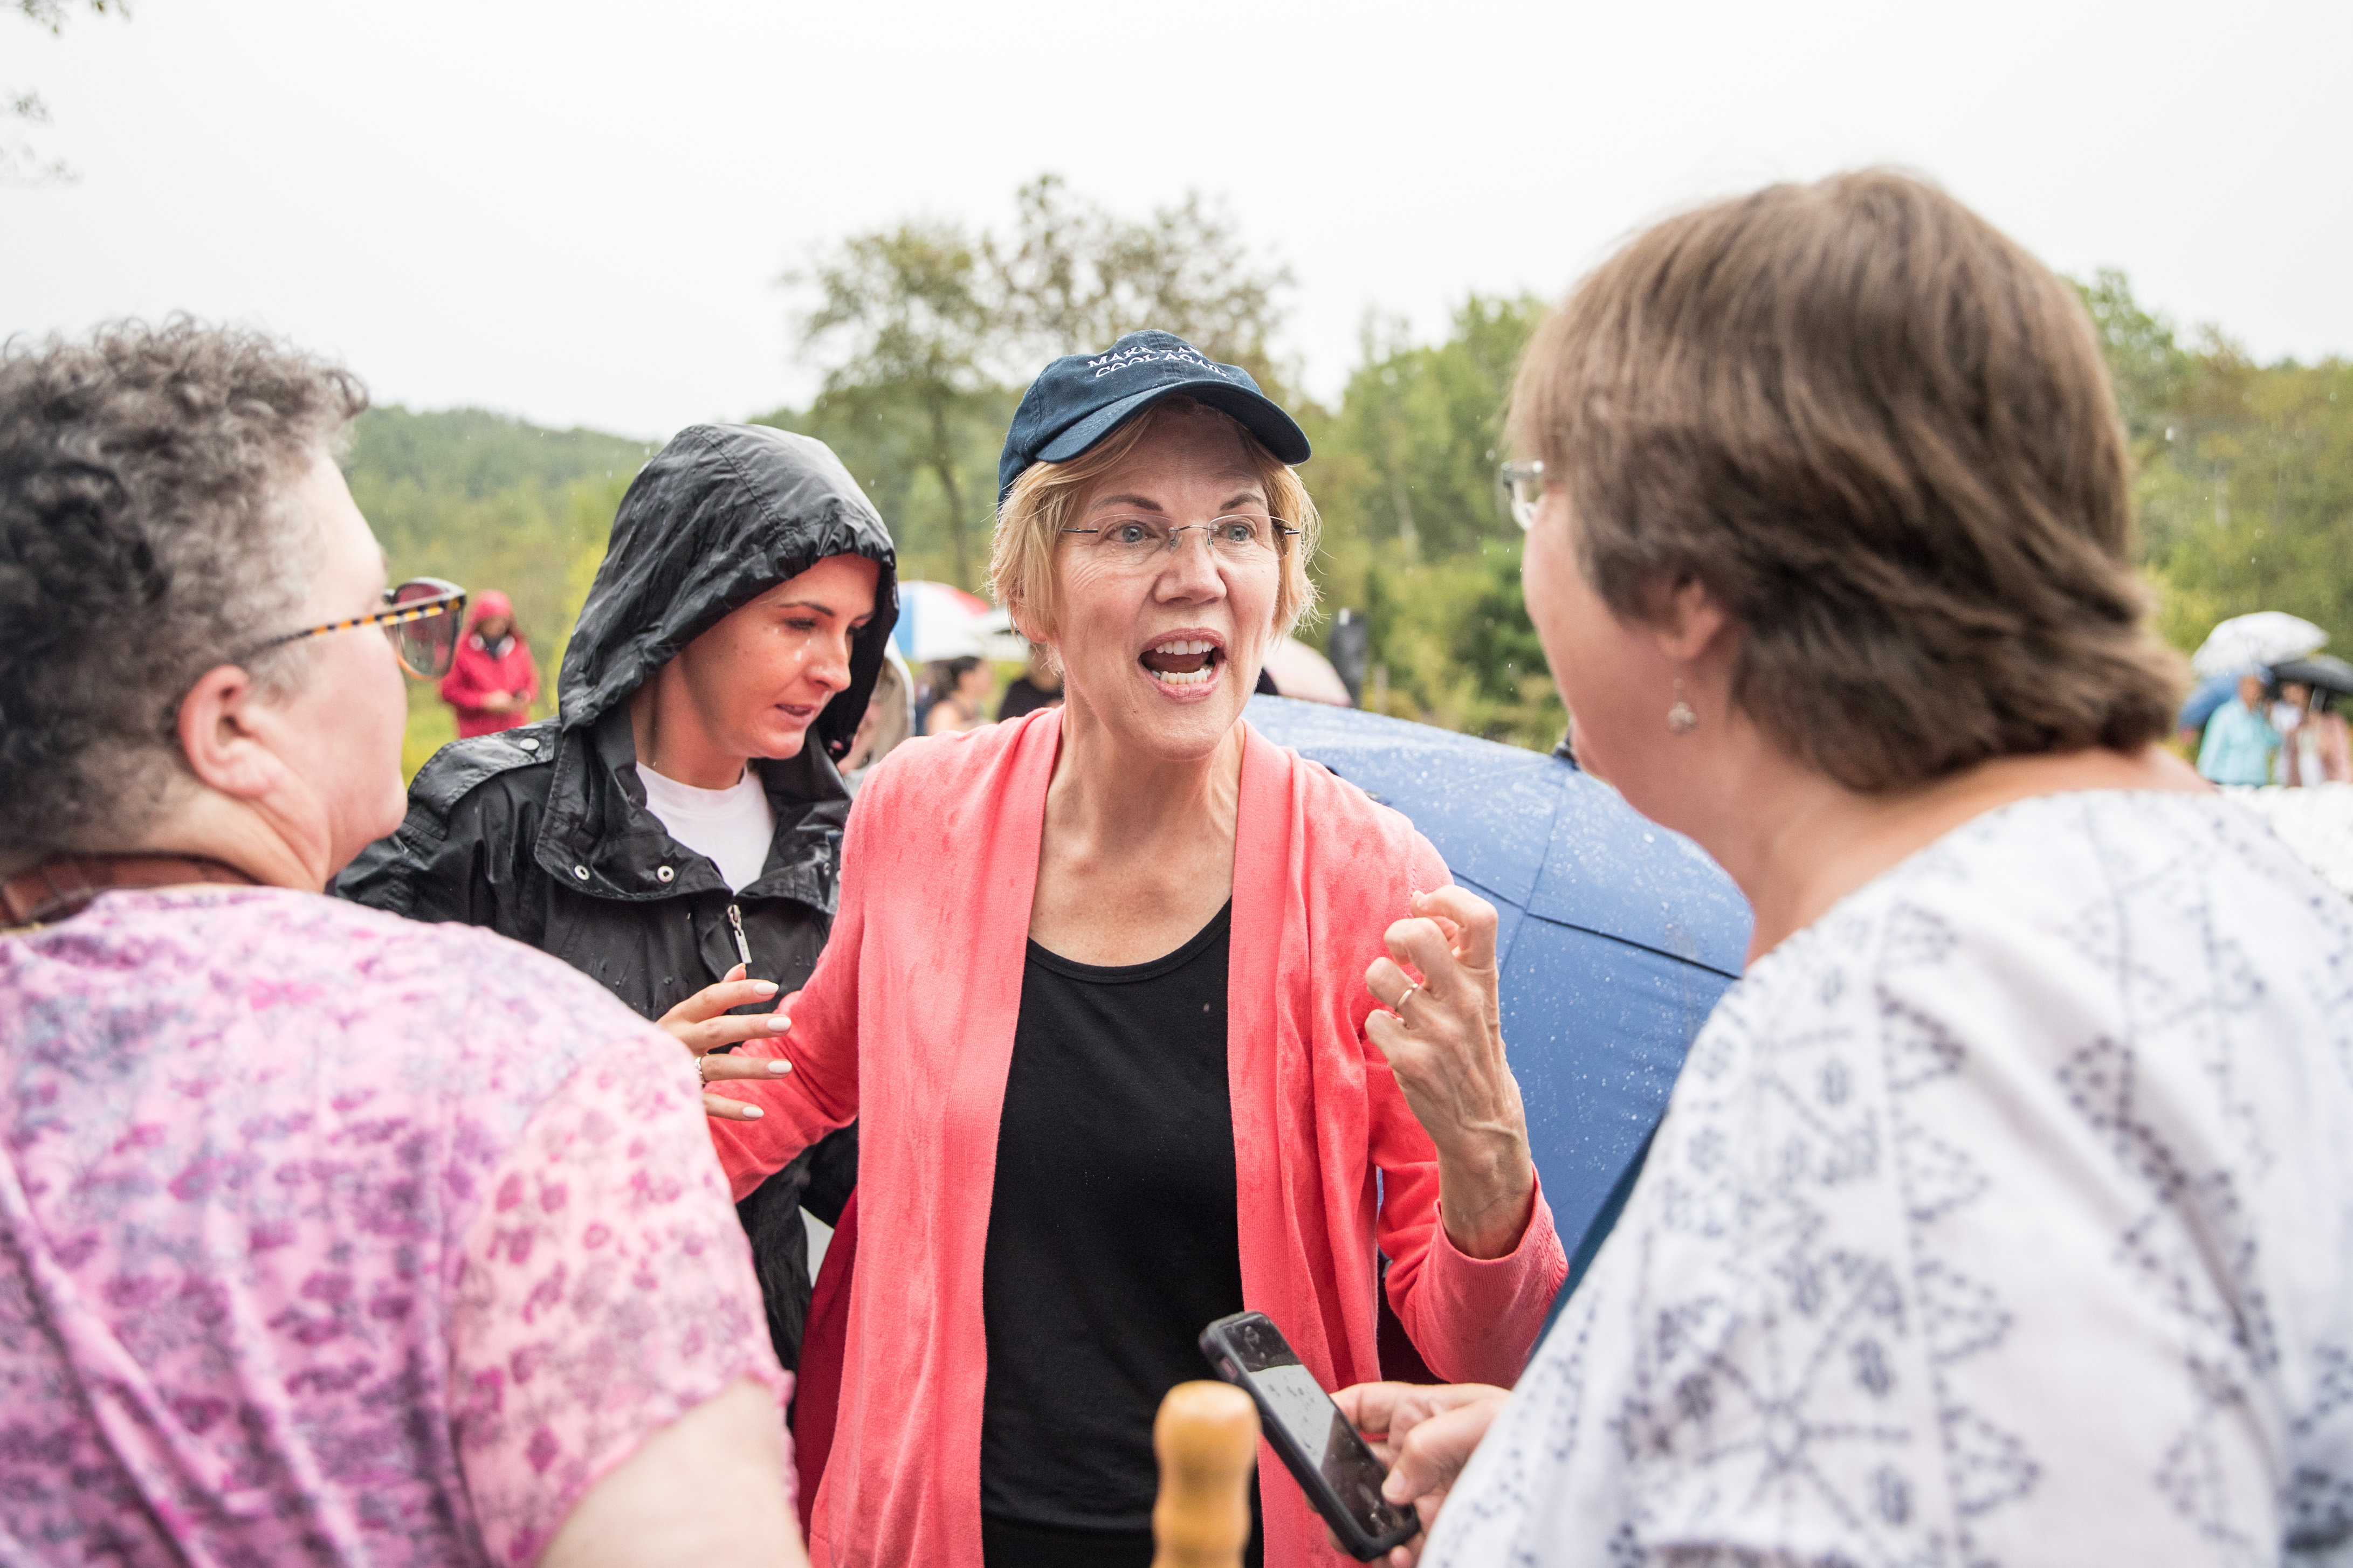 HAMPTON FALLS, NH - SEPTEMBER 02: Senator and Democratic presidential candidate Elizabeth Warren greets attendees in the rain after speaking at a Labor Day house party on September 2, 2019 in Hampton Falls, New Hampshire. (Scott Eisen/Getty Images)